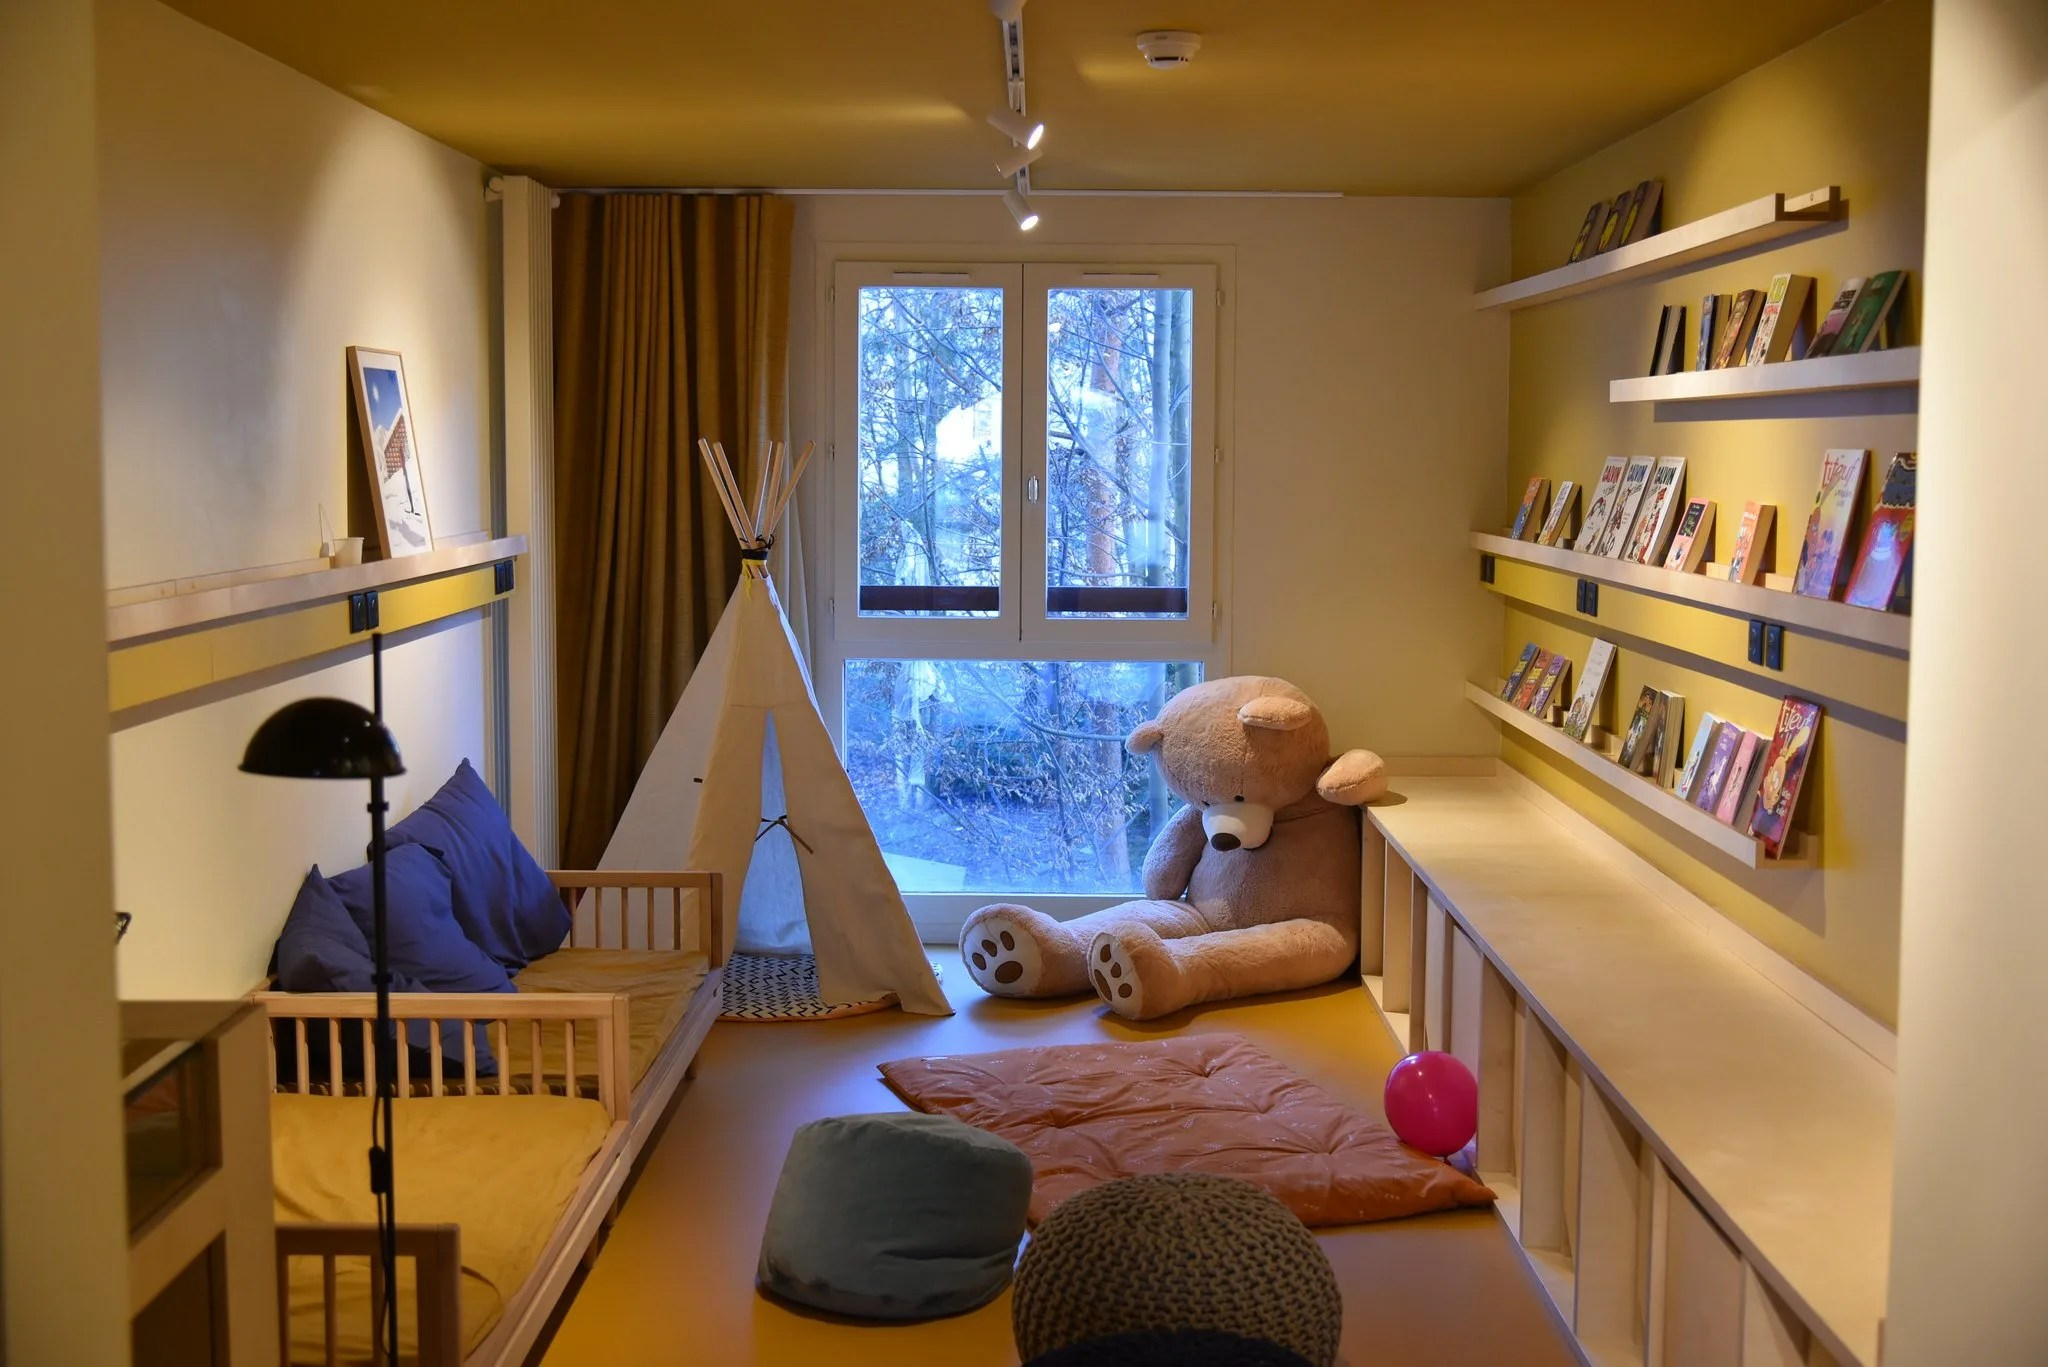 Kids Program at La Folie Douce hotel, Where to Stay in Chamonix, France